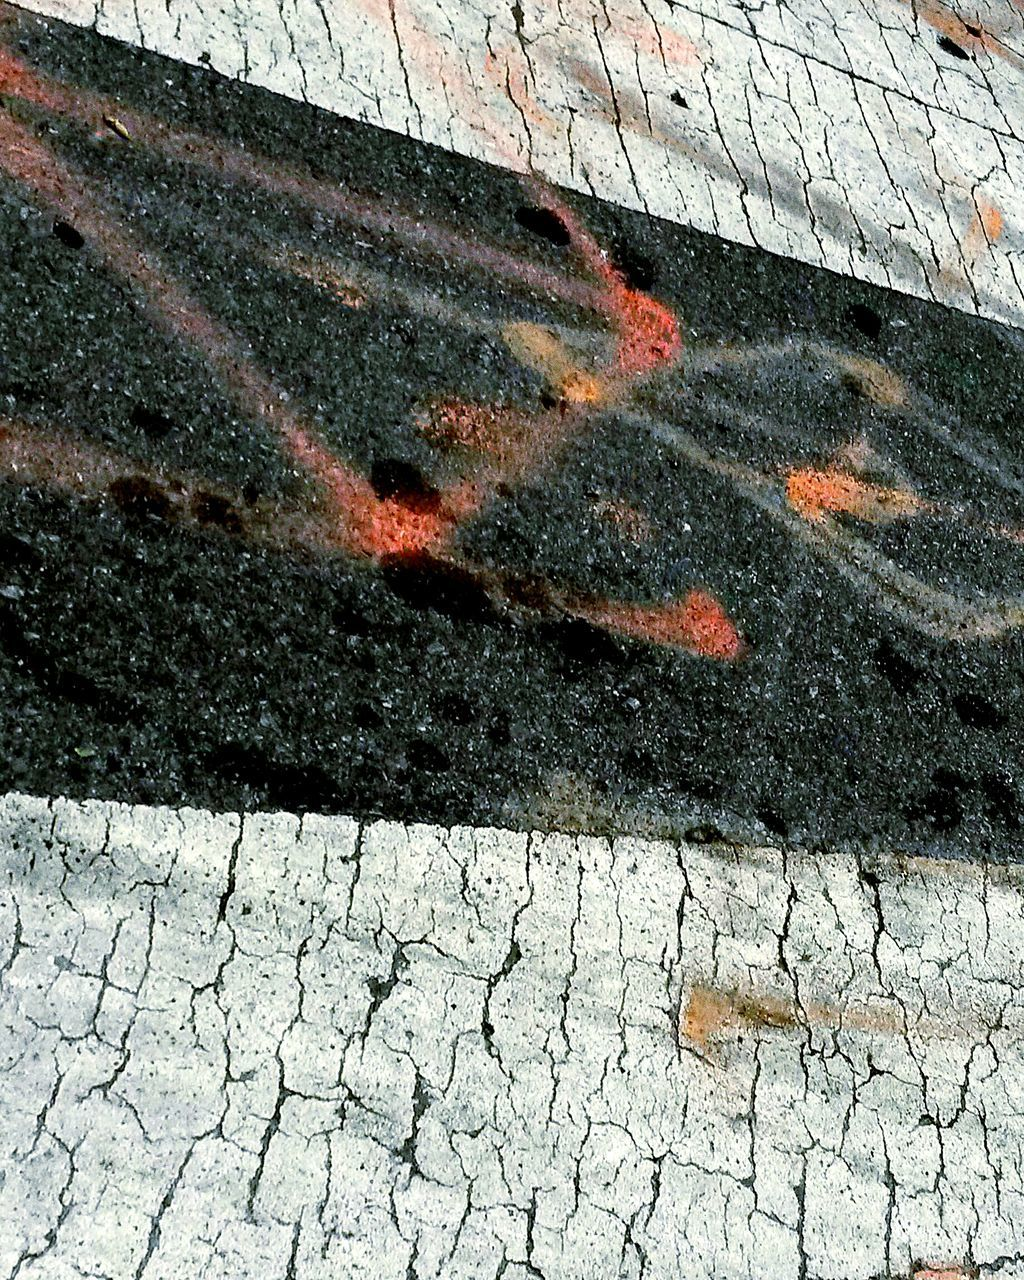 high angle view, day, outdoors, street, no people, cracked, textured, road, close-up